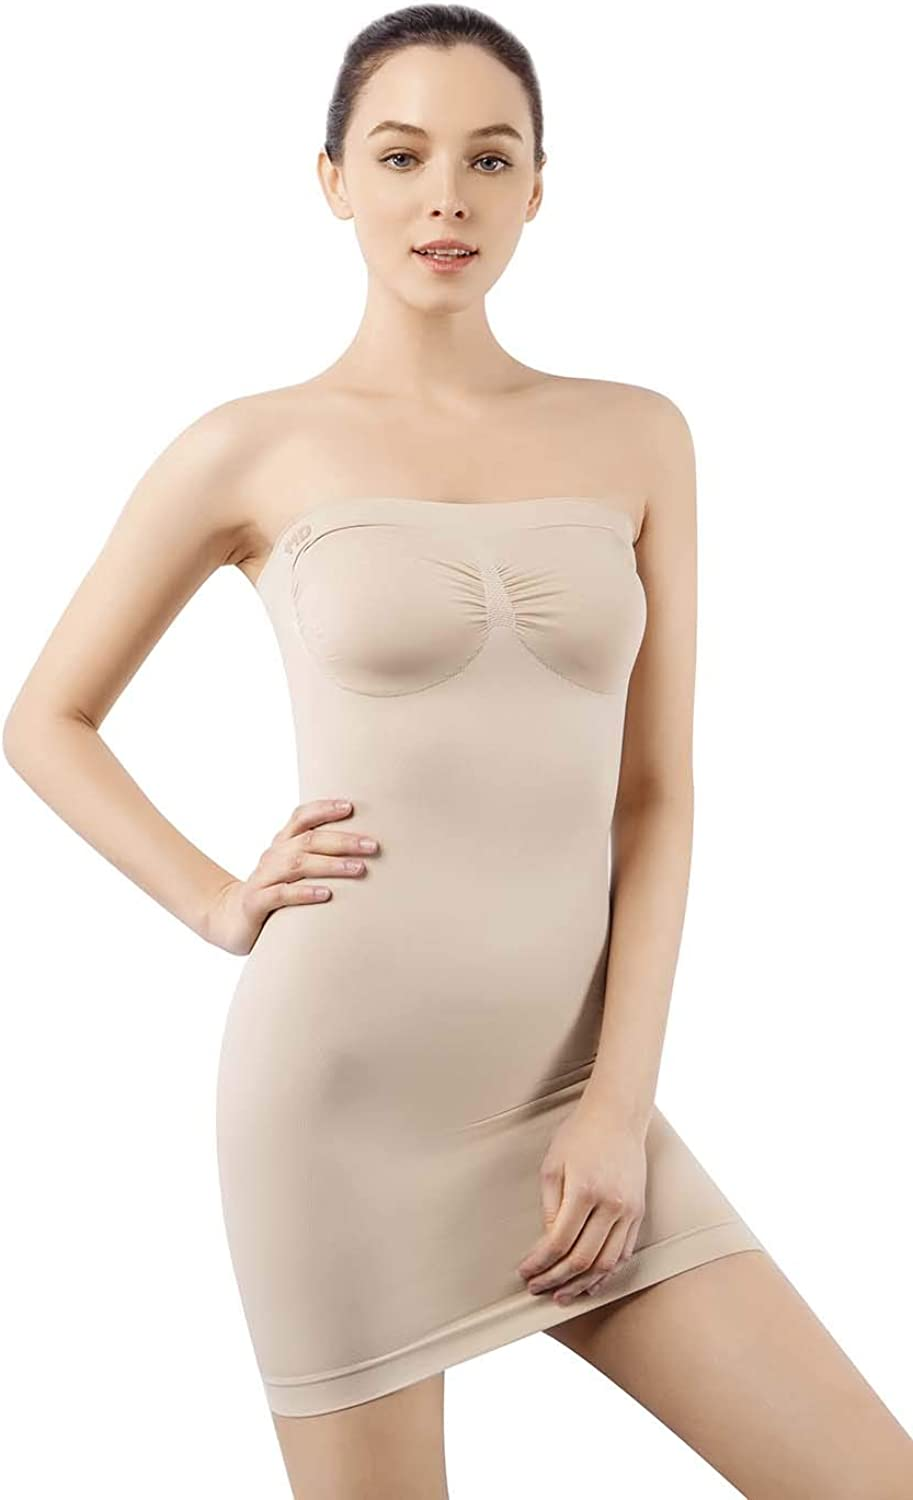 +MD Women's Strapless Shaperwear Full Body Slip Seamless Targeted Firm Tummy Control Slip Under Dresses